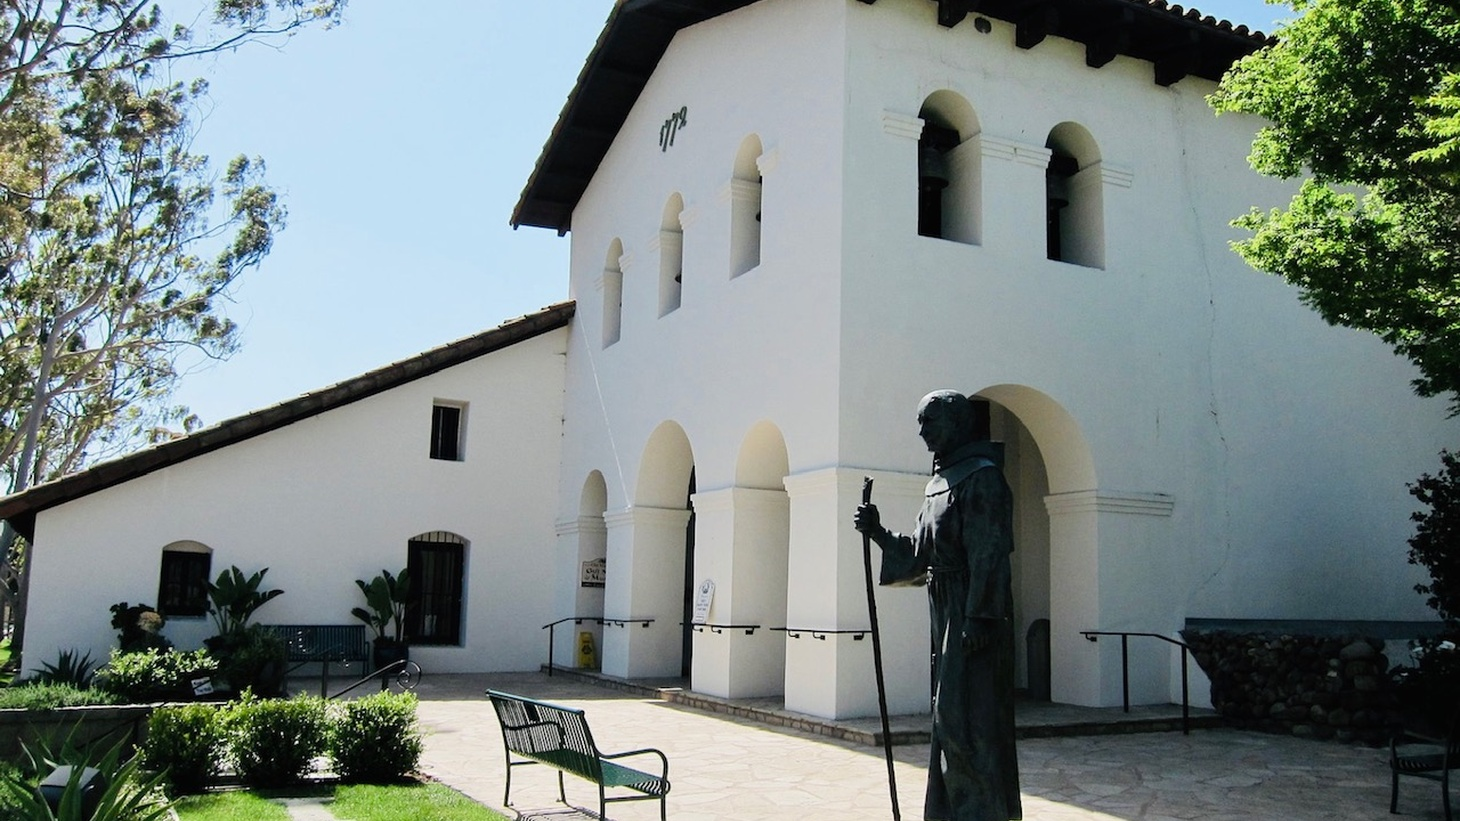 The Mission San Luis Obispo de Tolosa is home to a statue of Father Junipero Serra, a controversial figure city councilmembers are debating whether or not to honor.